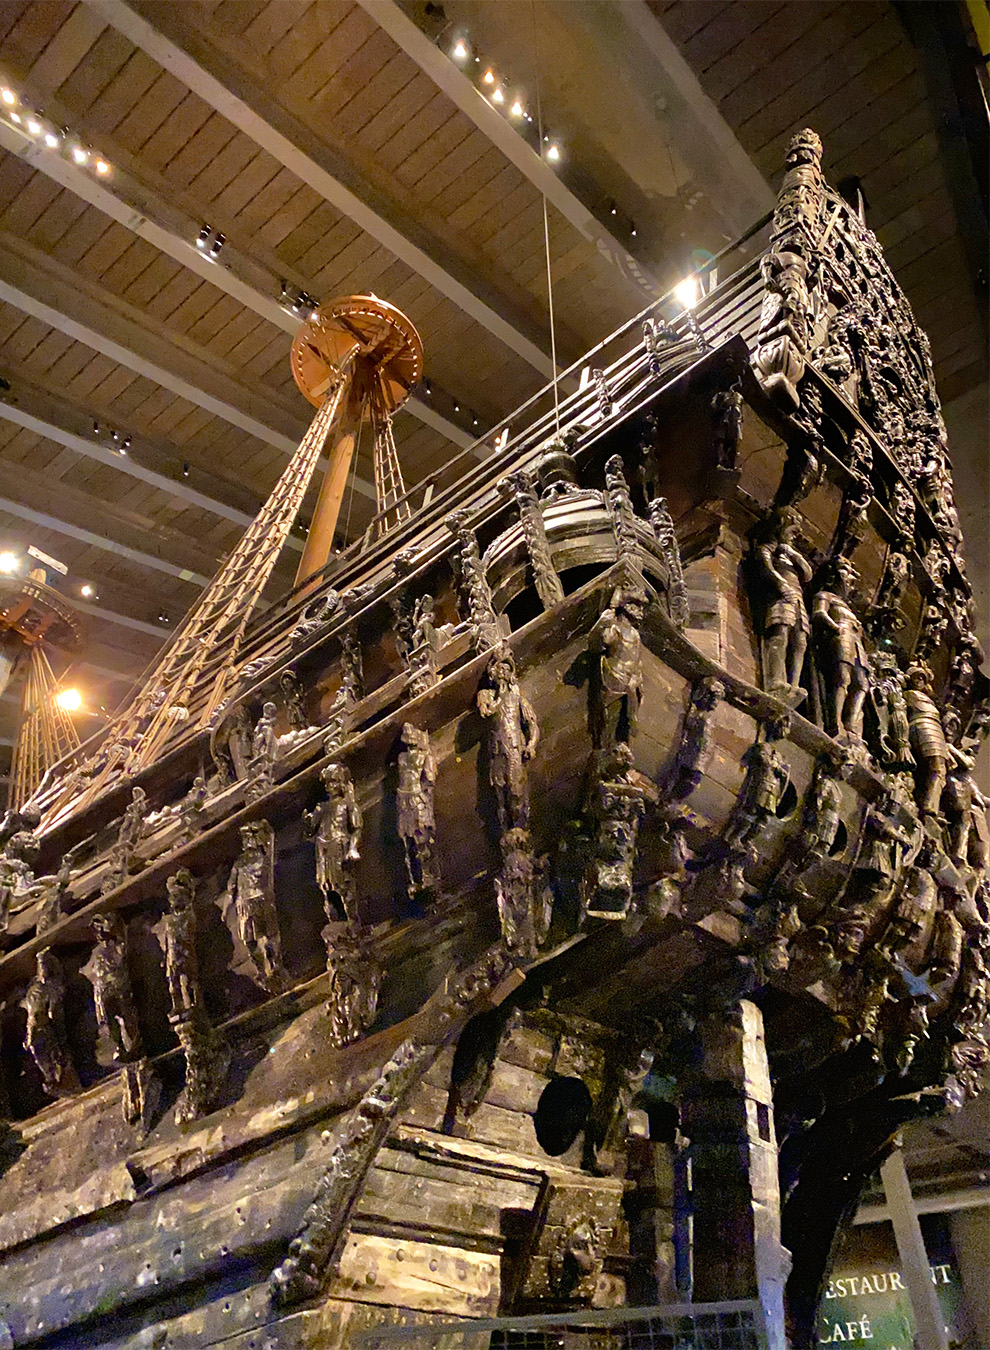 Details of the Vasa boat